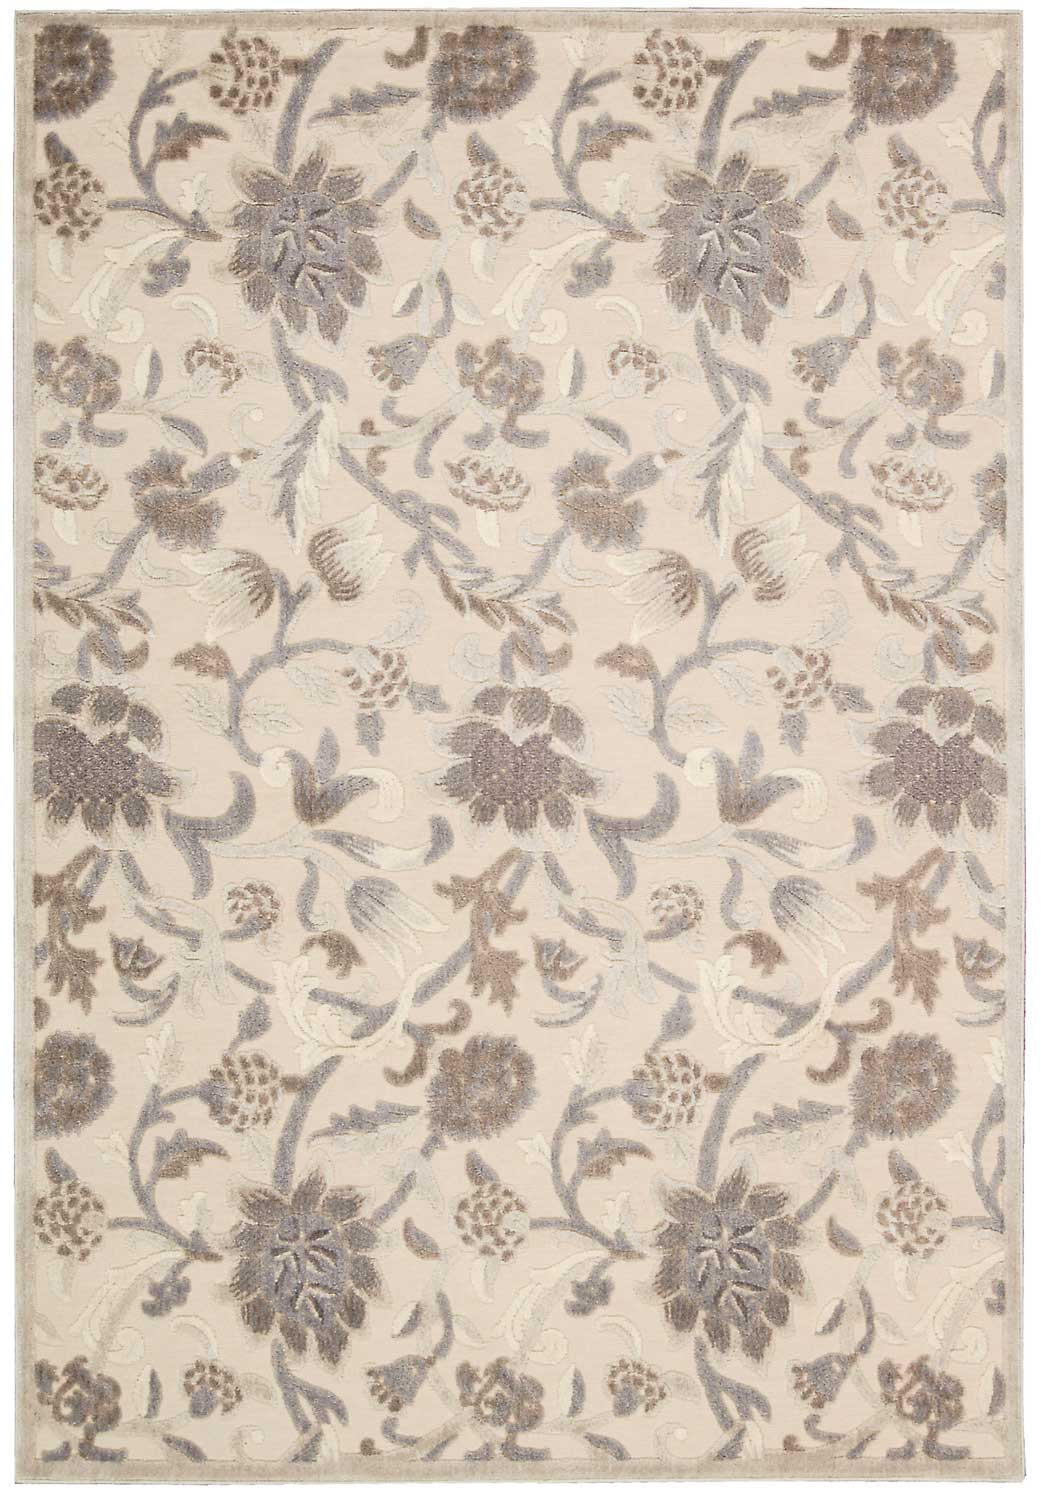 Nourison Graphic Illusions GIL06 Ivory Area Rug